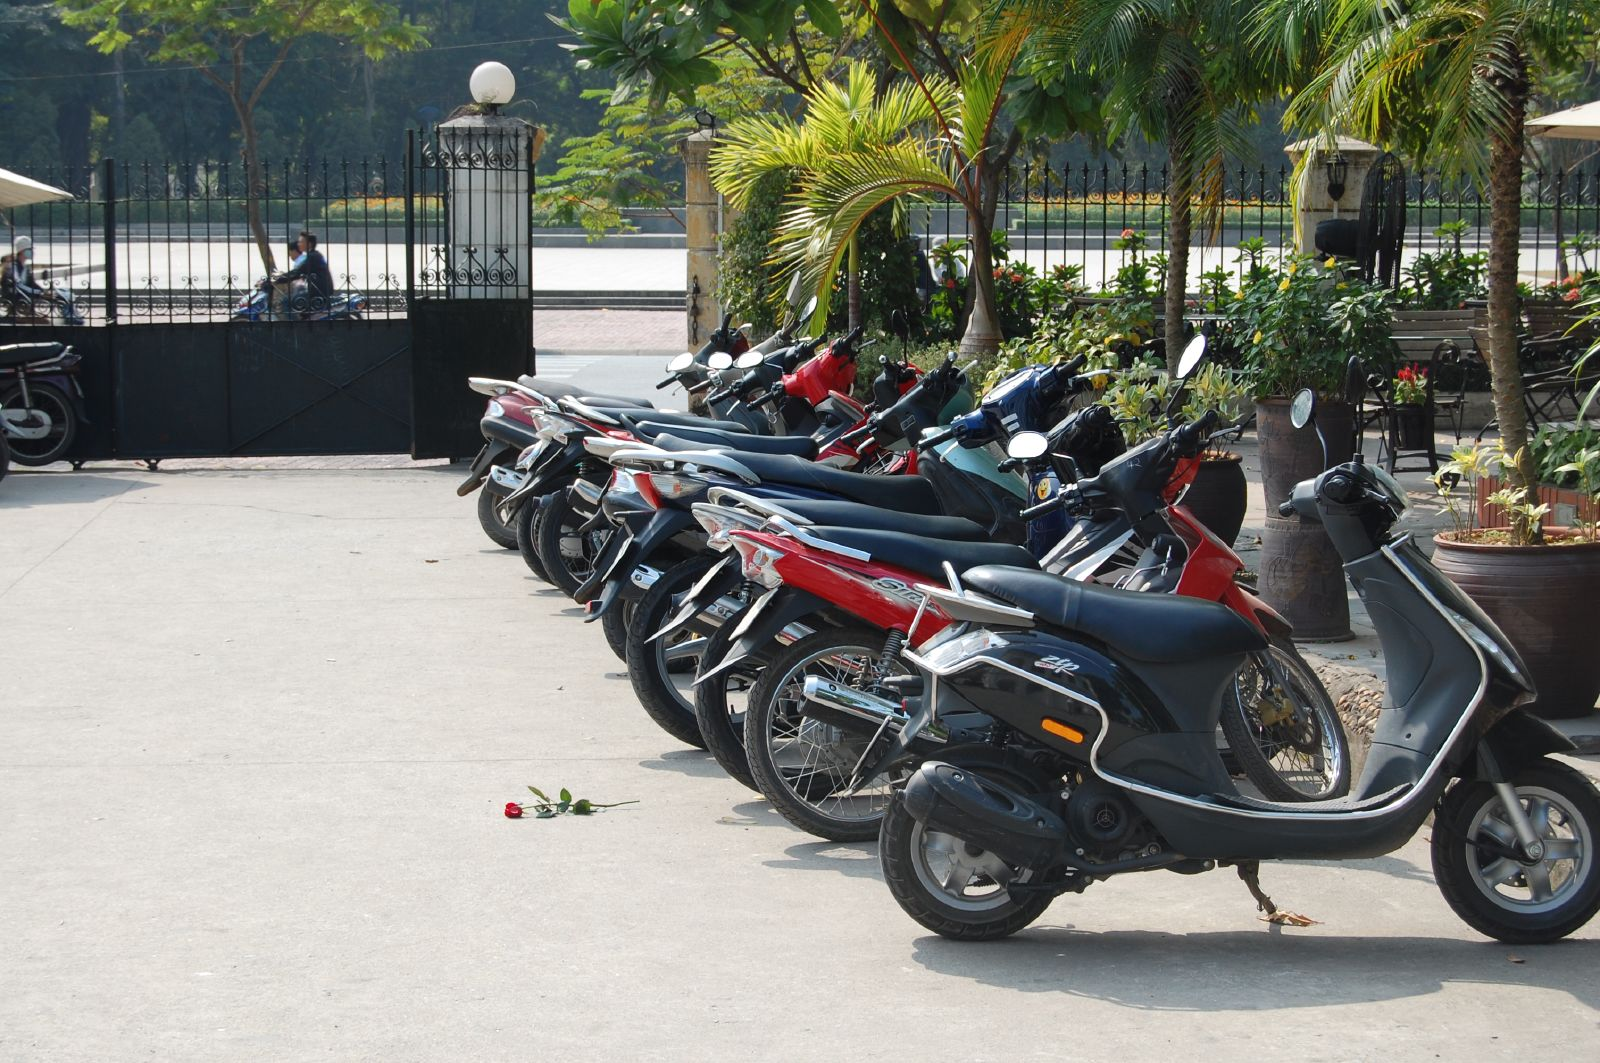 Image of a row of motorbikes in Vietnam